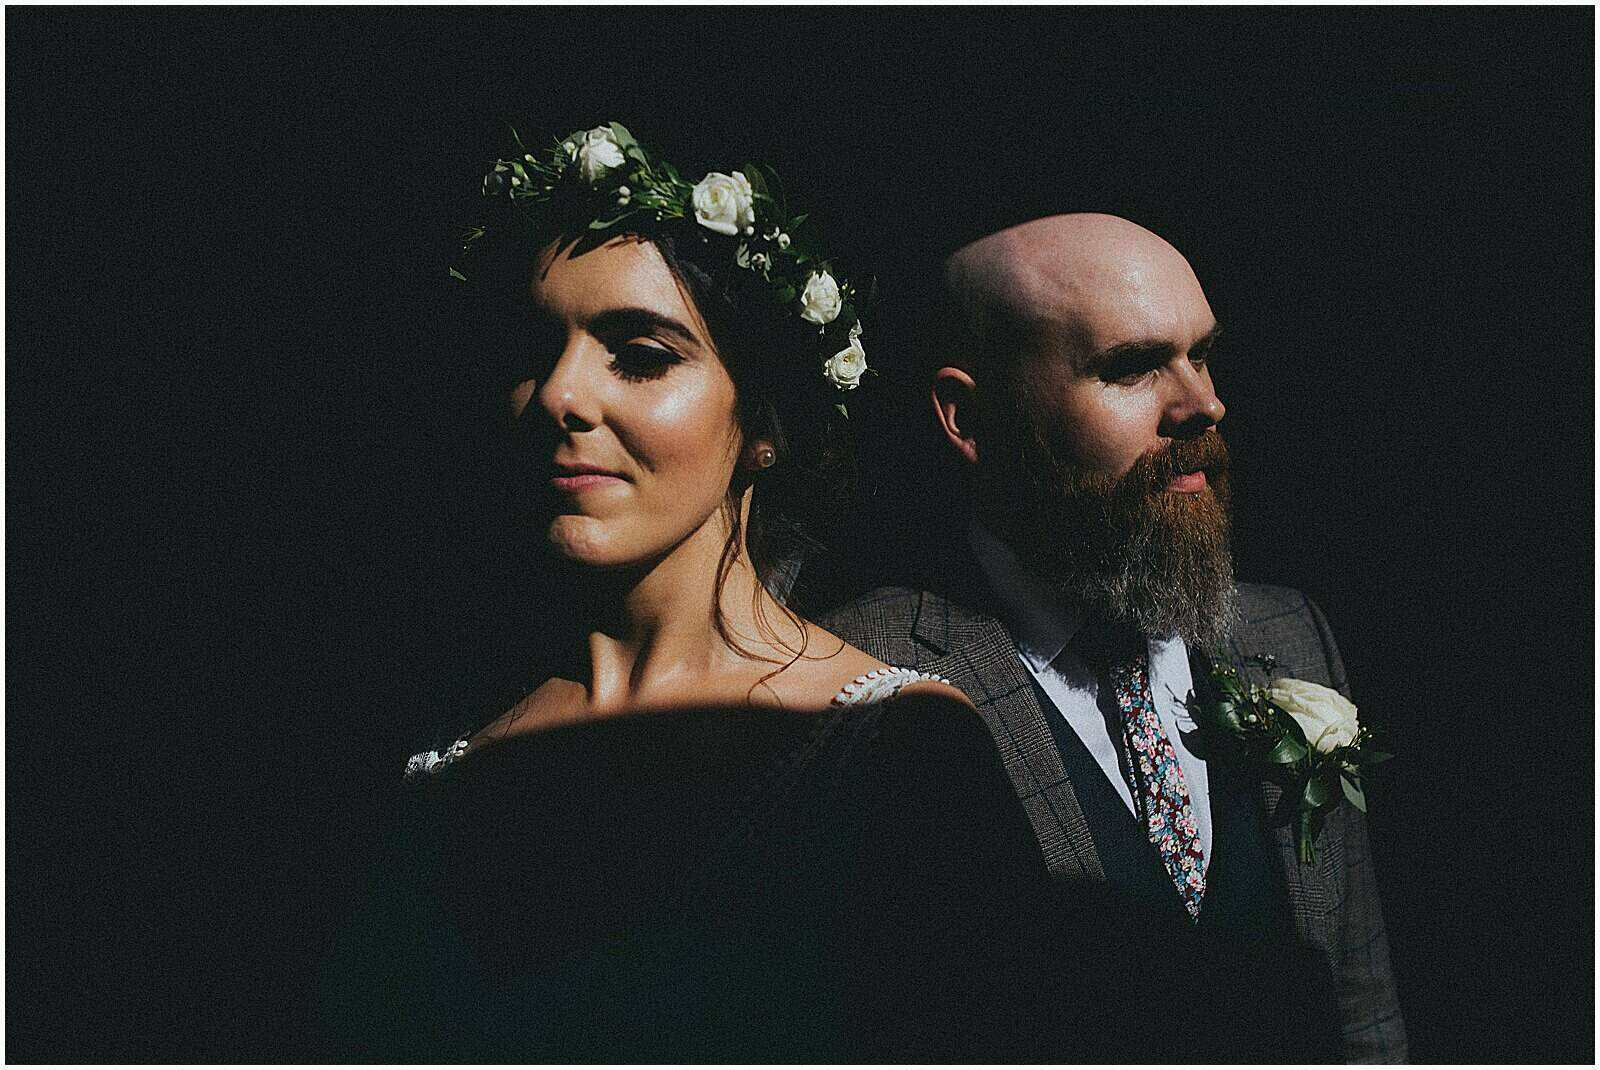 The Set Theatre, Kilkenny - Stephanie and Colm 5